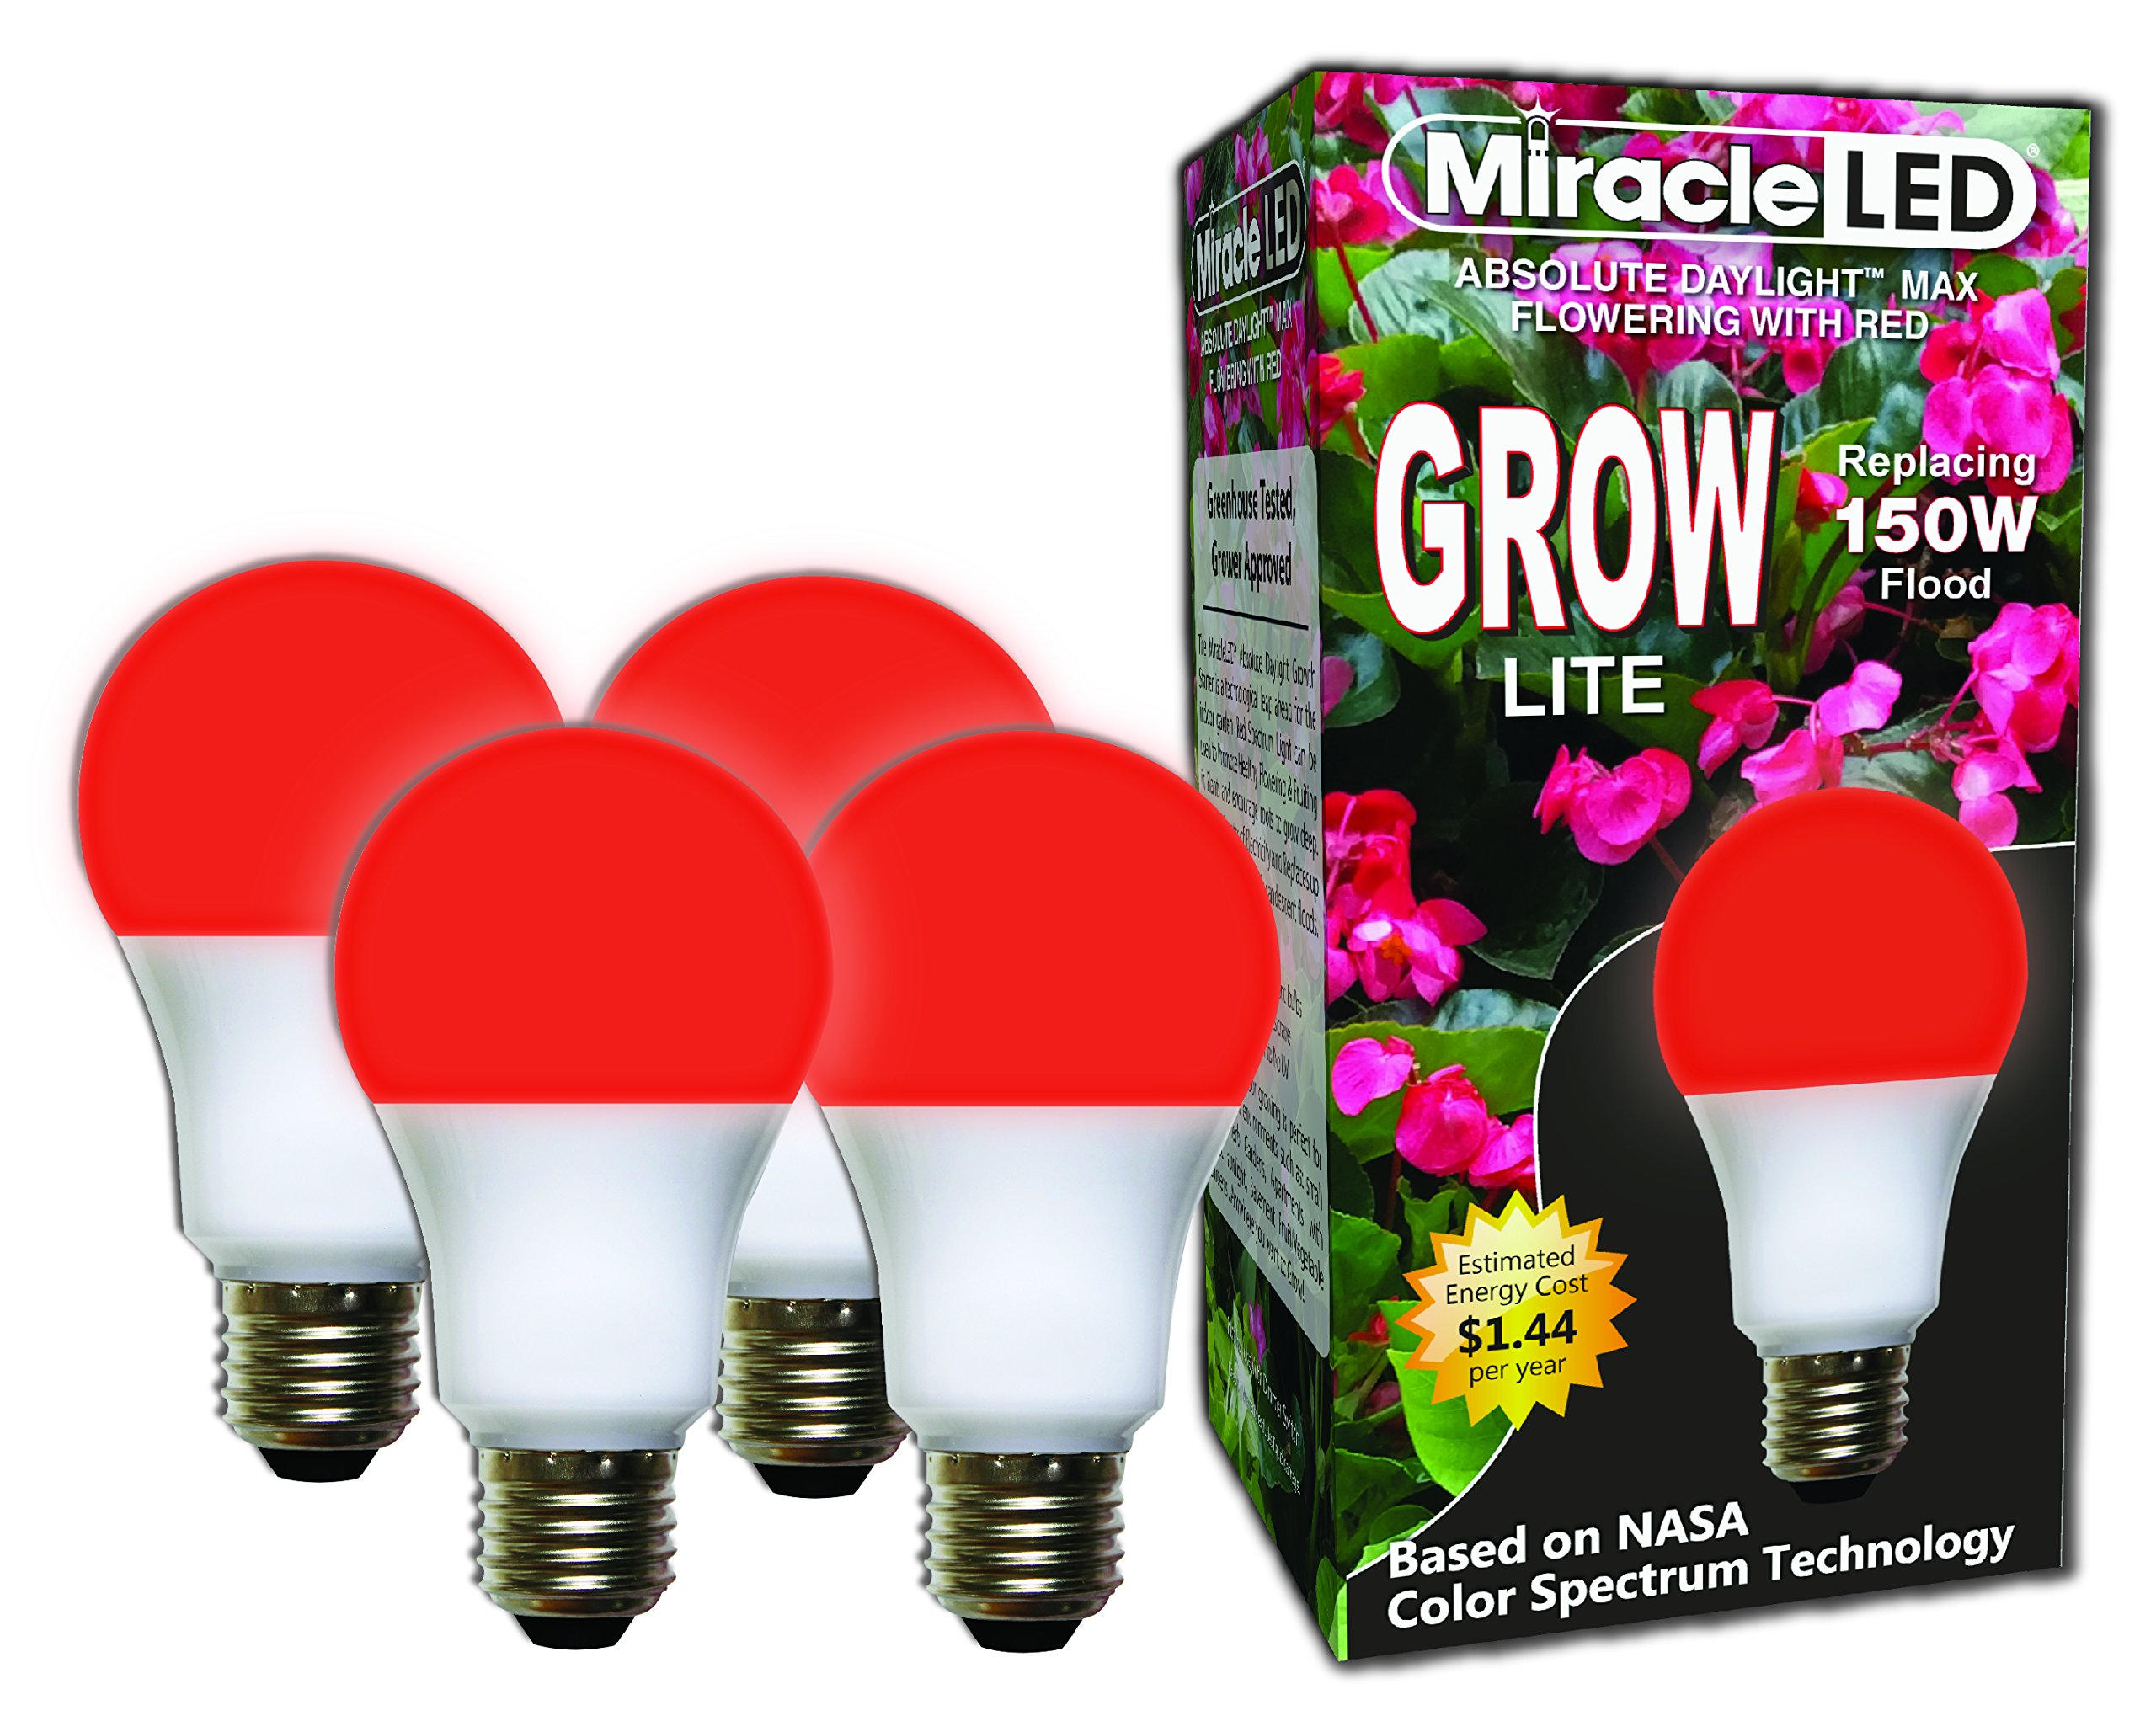 Miracle LED Absolute Daylight MAX Flowering Red LED Grow Lite - Replaces up to 150W - For Intense Flowering and Fruiting of your Indoor Plants and DIY Horticulture & Hydroponic Gardens (604278) 4 Pack